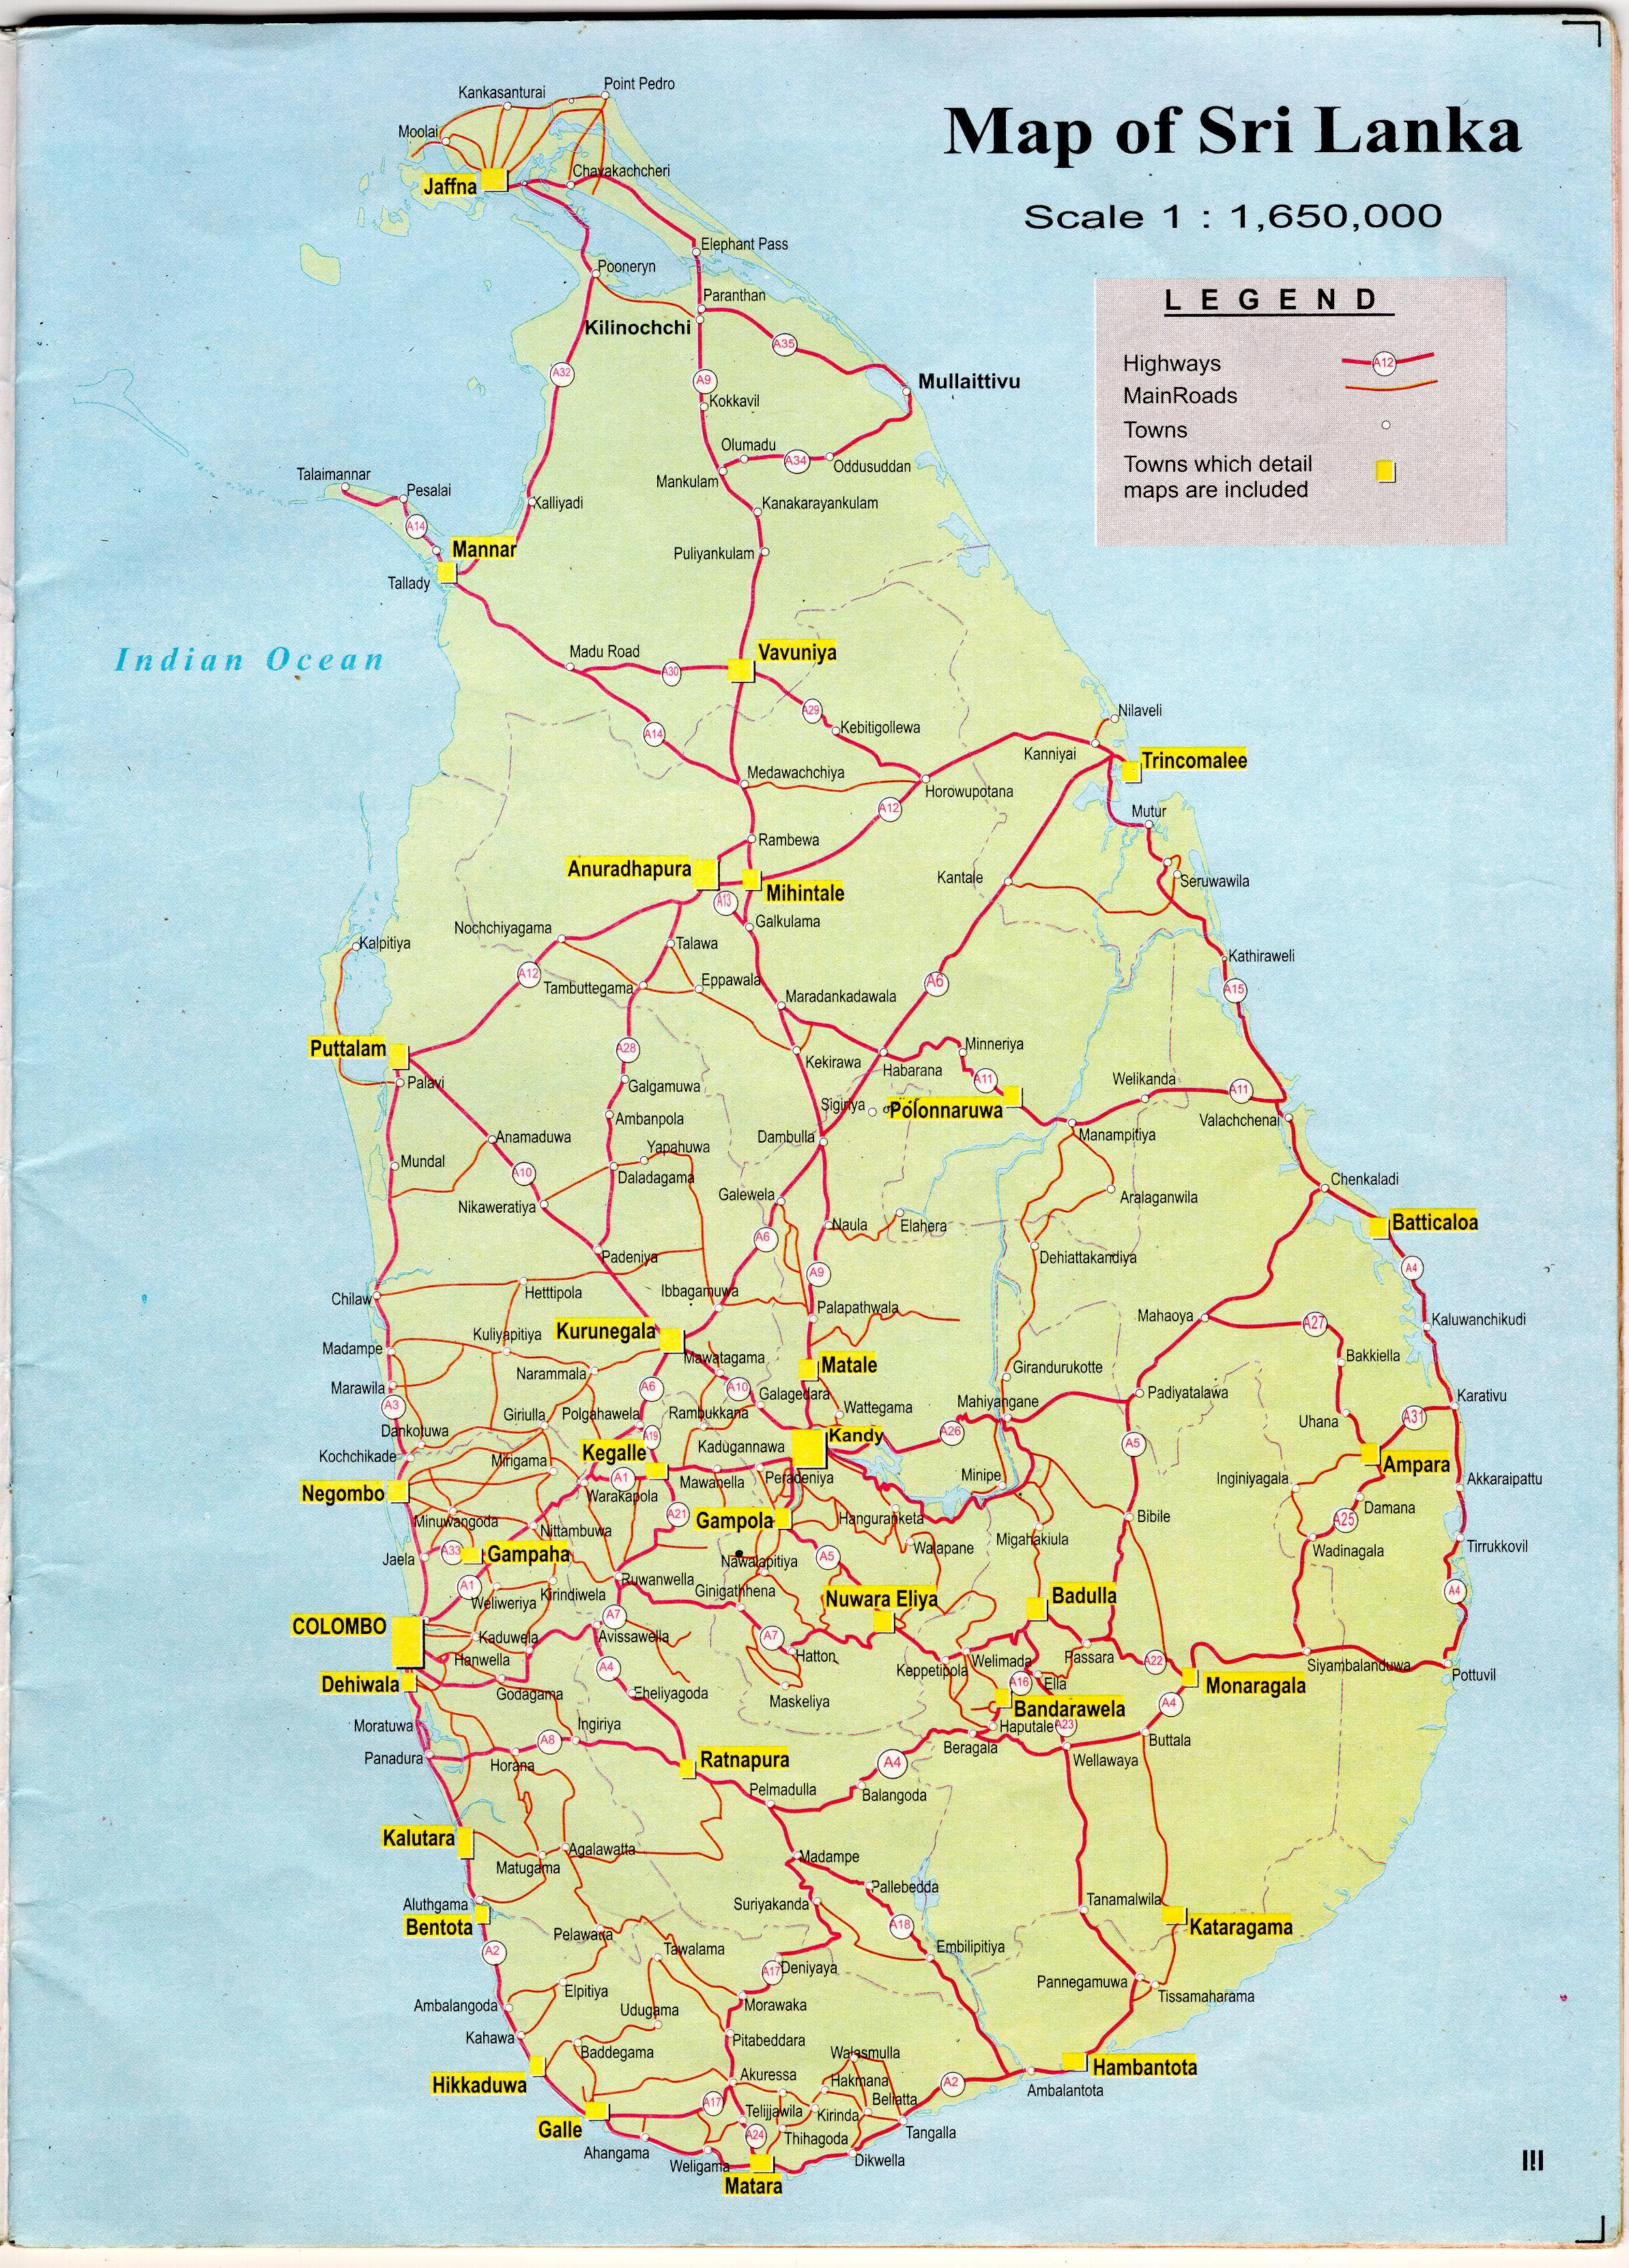 Sri Lanka Maps | Printable Maps of Sri Lanka for Download on satellite map of the vatican, satellite map of trinidad and tobago, satellite map of haiti, satellite map of cebu island, satellite map of abu dhabi, satellite map of iraq, satellite map of qatar, satellite map of kosovo, satellite map of czech republic, satellite map of mali, satellite map of brunei darussalam, satellite map of united states of america, satellite map of vatican city, satellite map of saipan, satellite map of tunisia, satellite map of iceland, satellite map of quezon city, satellite map of somalia, satellite map of caribbean islands, satellite map of eastern europe,